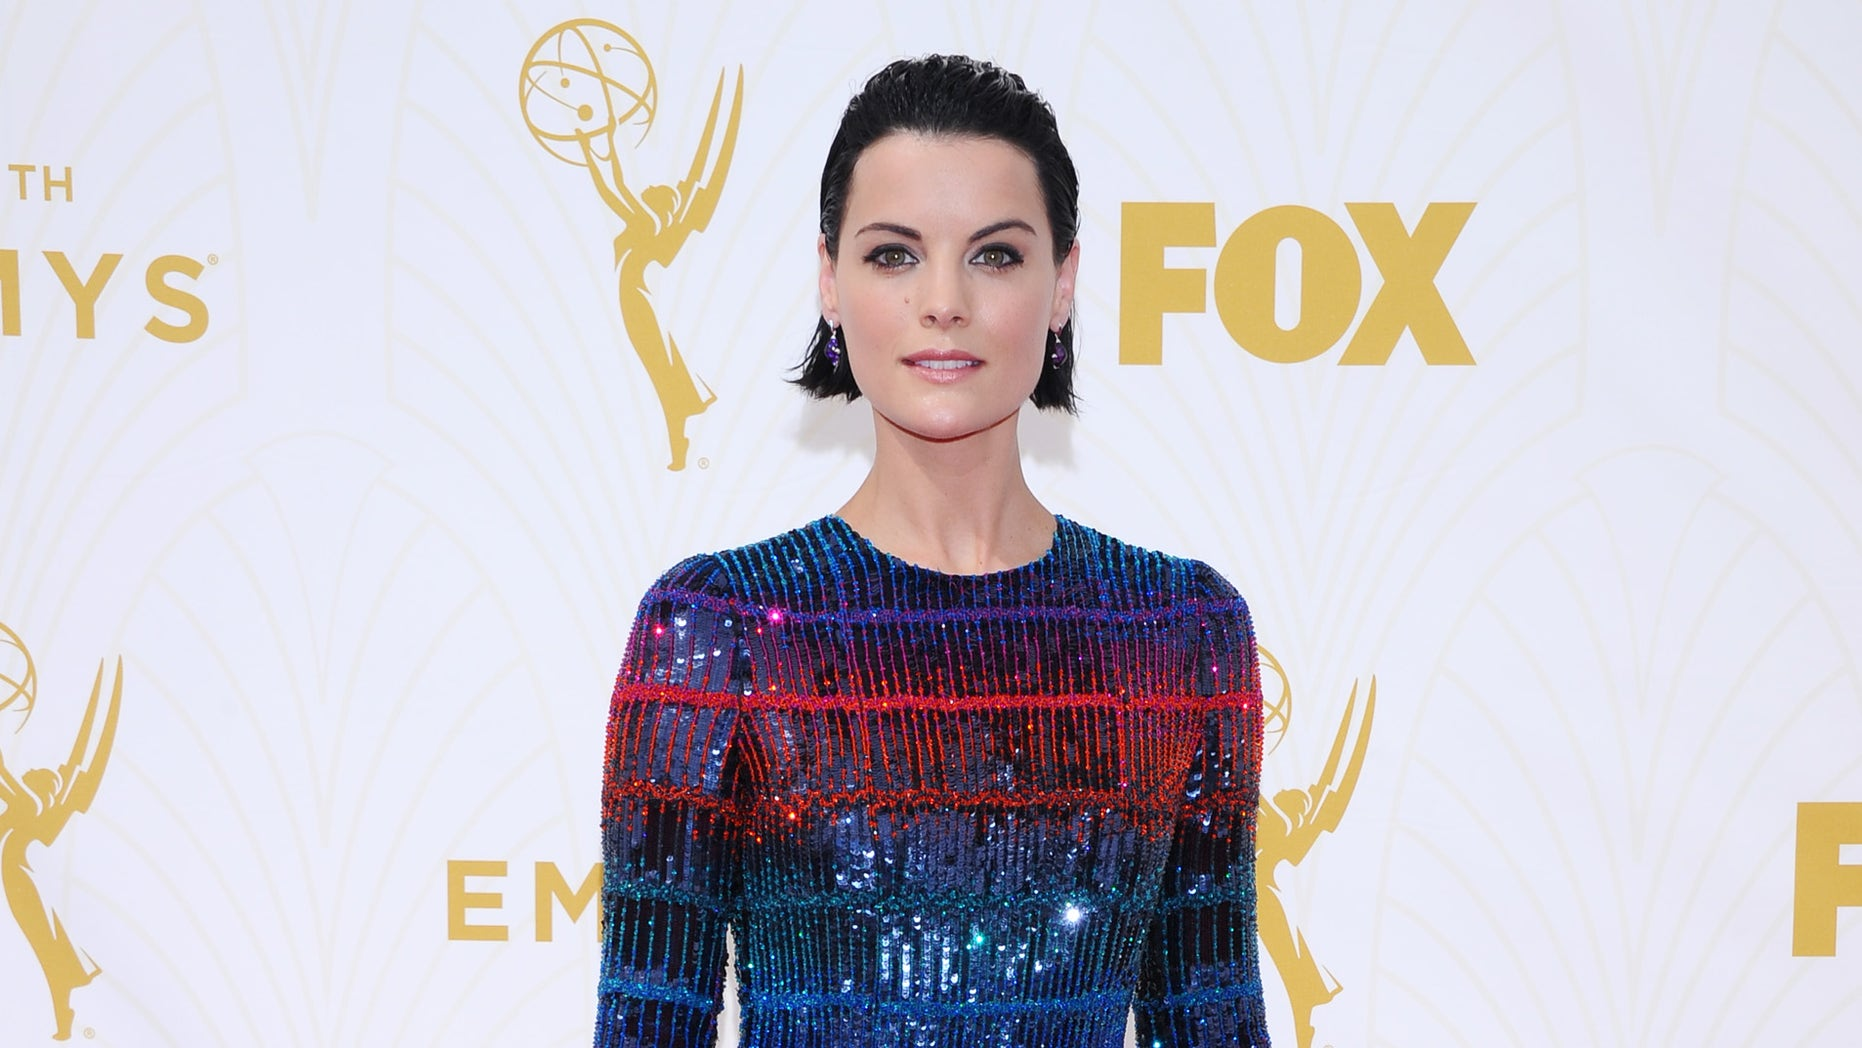 IMAGE DISTRIBUTED FOR THE TELEVISION ACADEMY - Jaimie Alexander arrives at the 67th Primetime Emmy Awards on Sunday, Sept. 20, 2015, at the Microsoft Theater in Los Angeles. (Photo by Vince Bucci/Invision for the Television Academy/AP Images)